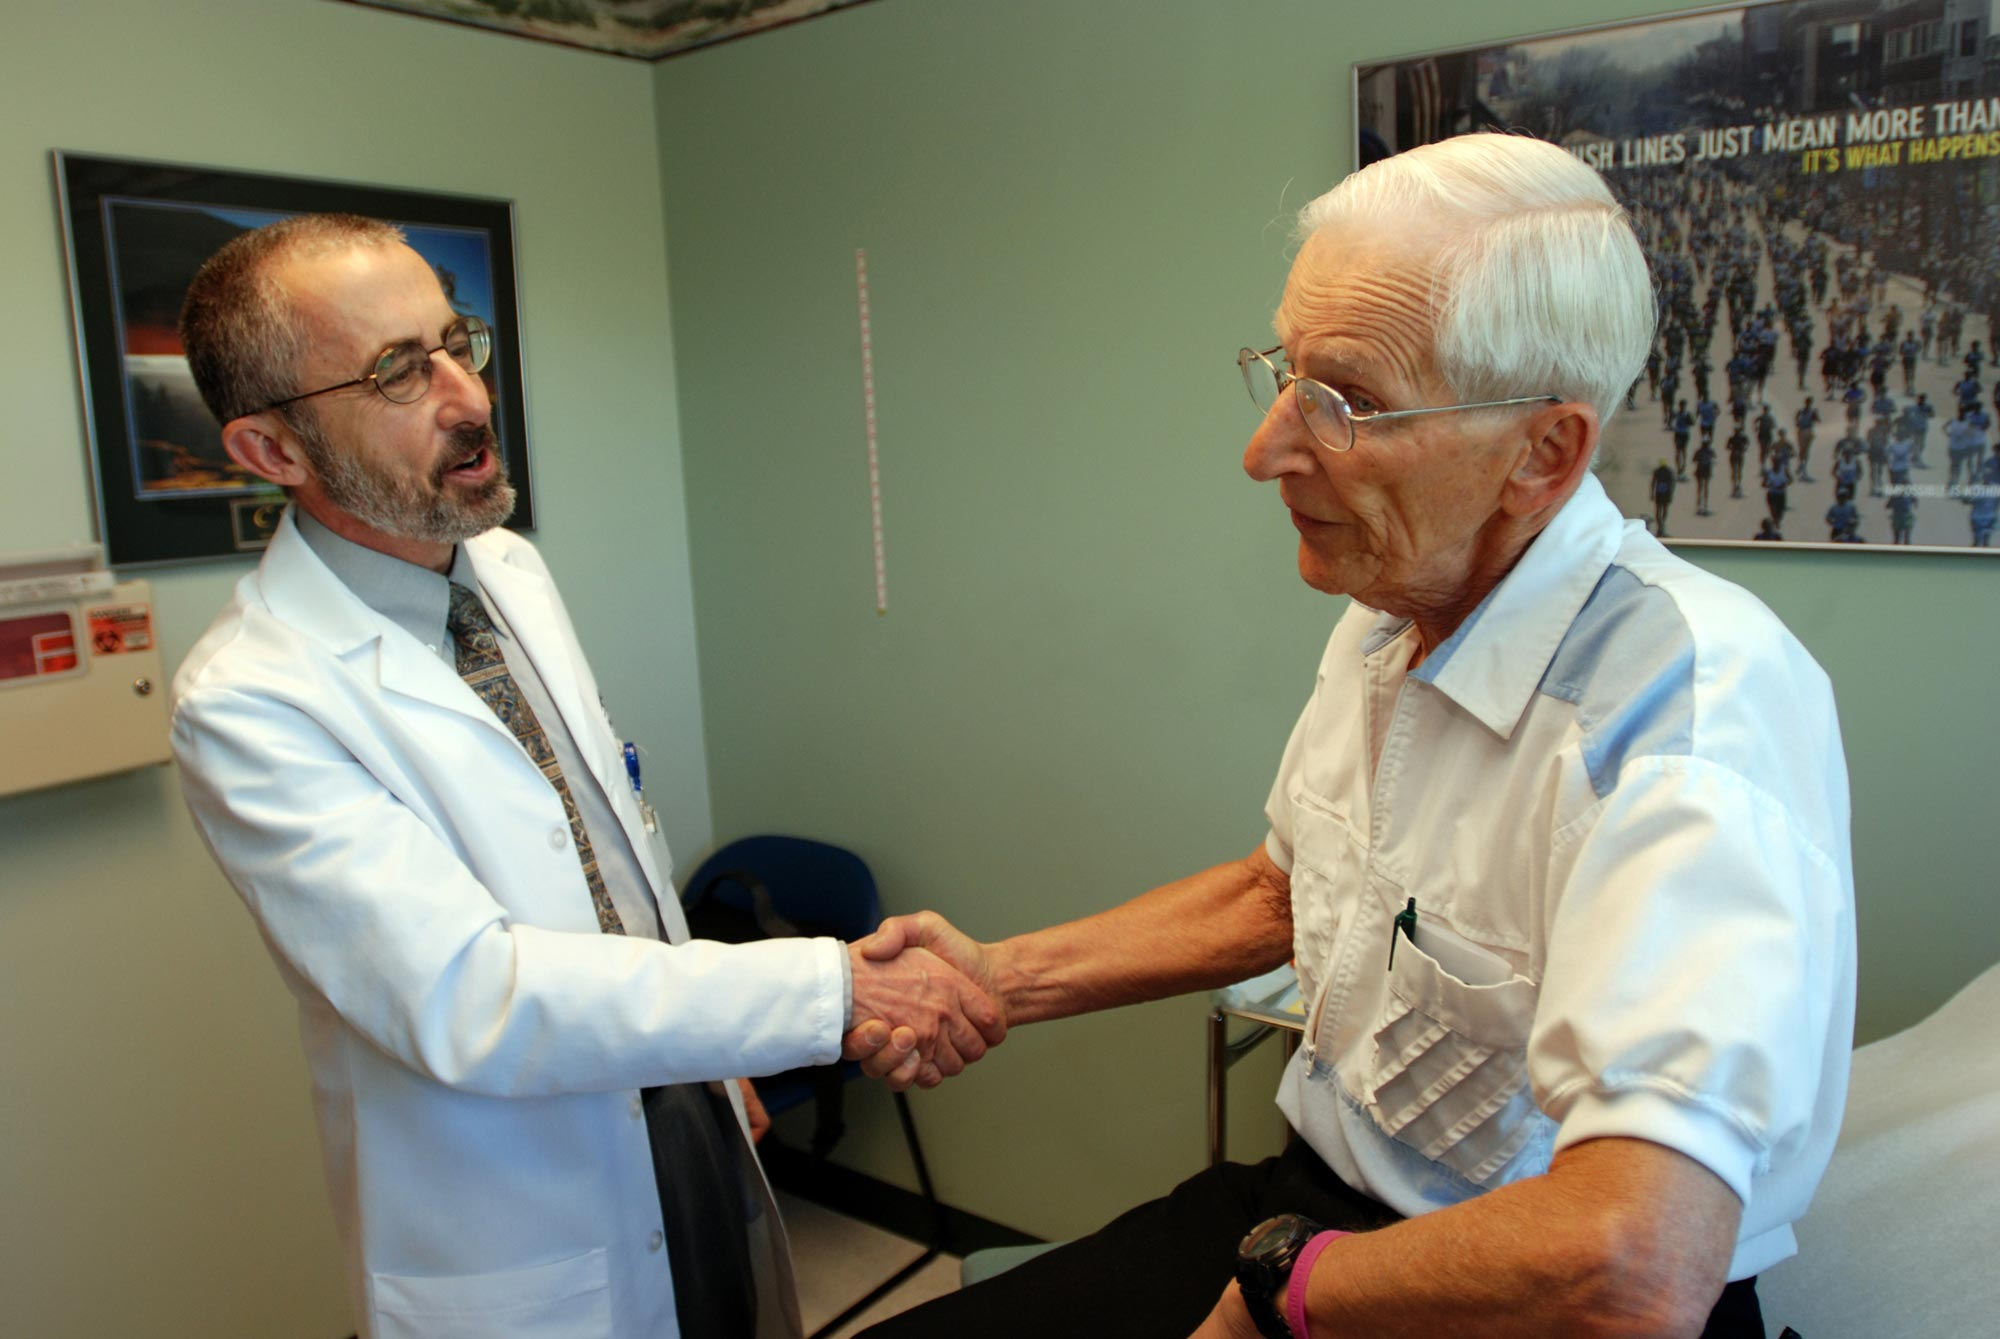 A Medicare patient shakes hands with his doctor after an appointment in Grants Pass, Oregon.